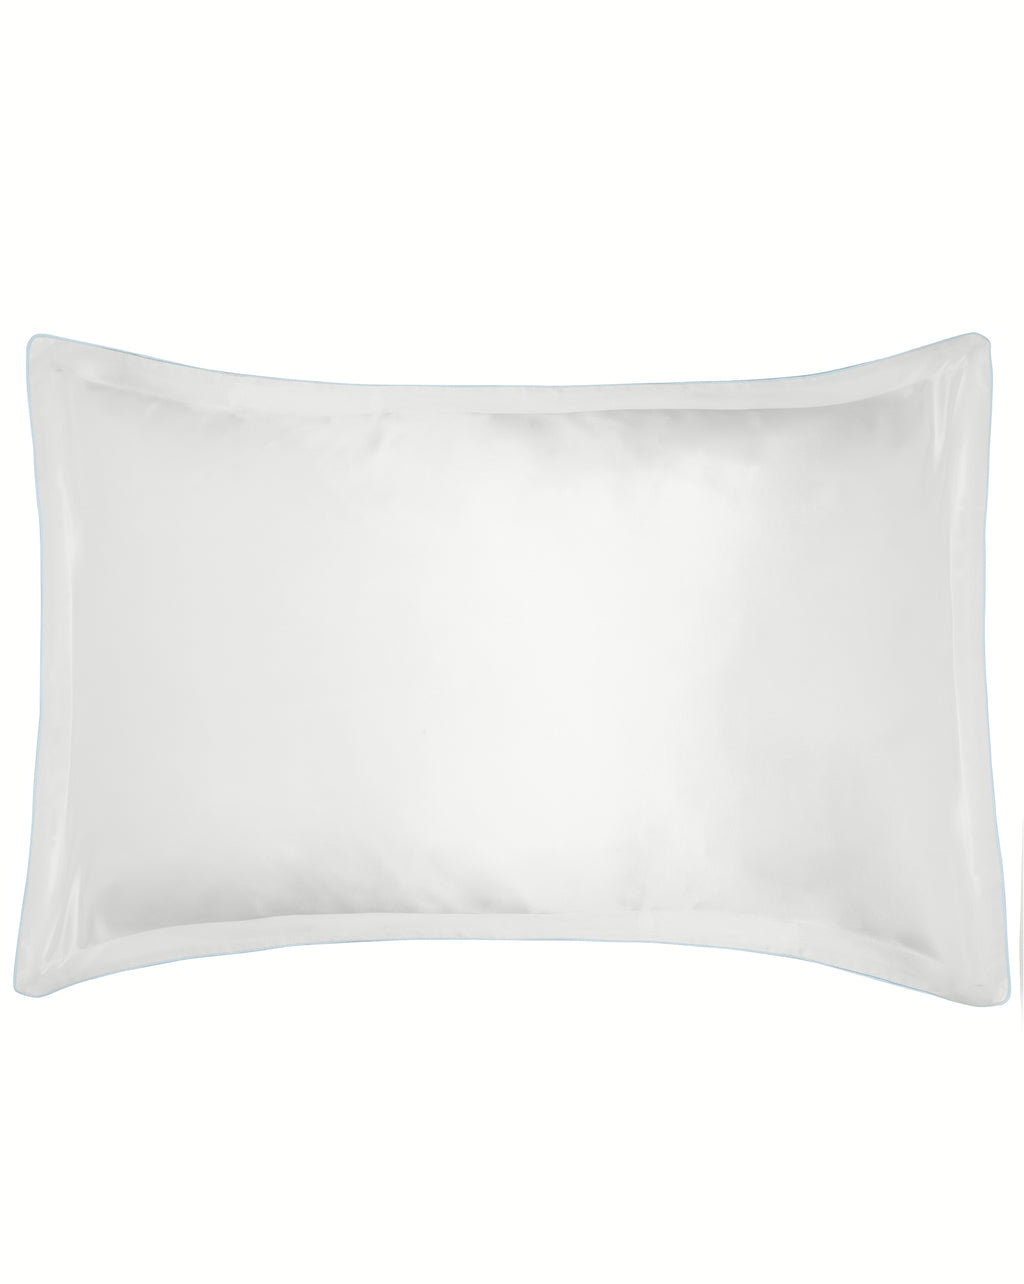 Nuit Pillowcase - White